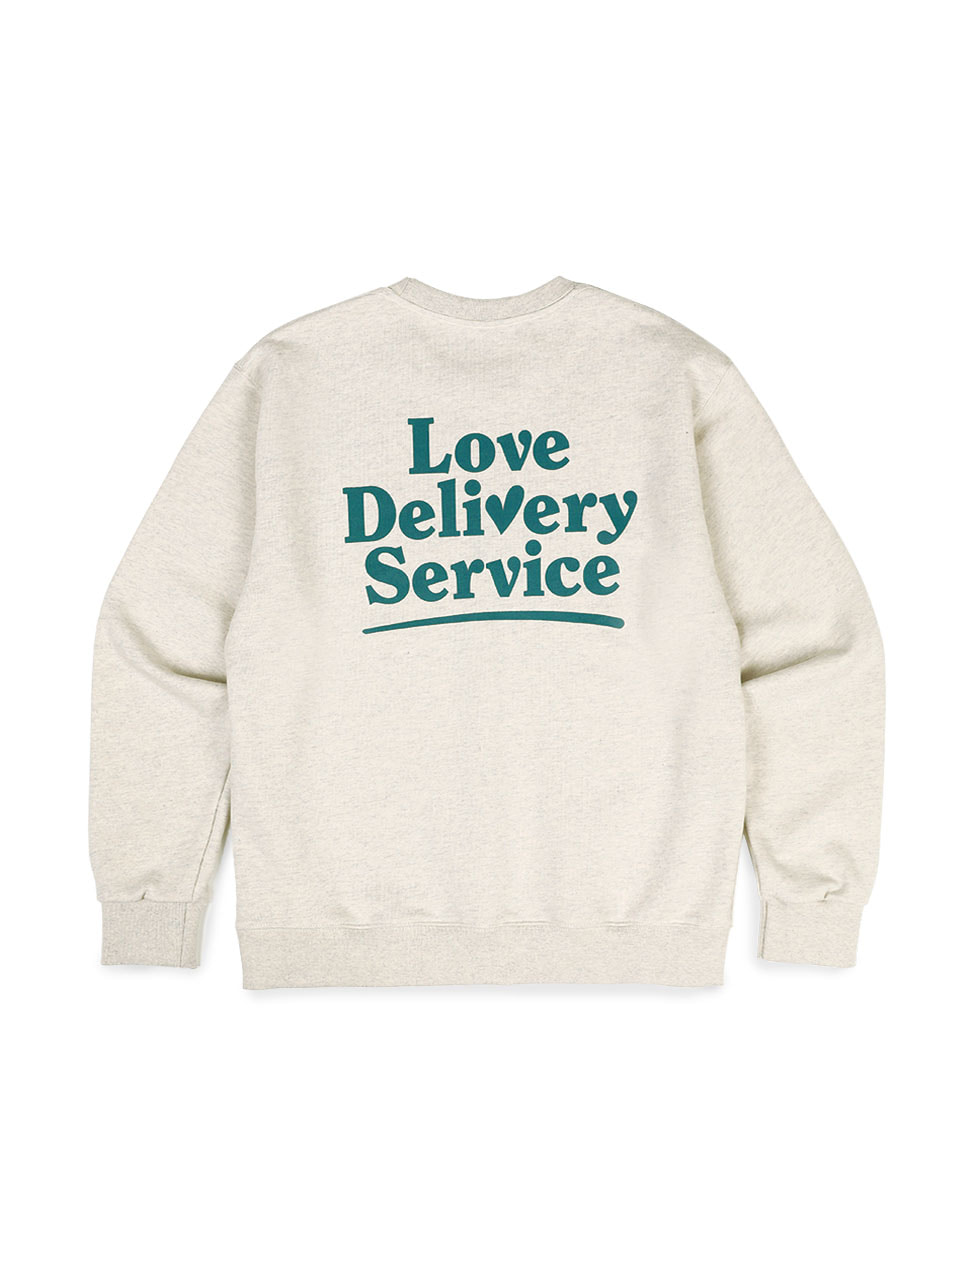 Love delivery service Sweat shirts heather gray (ivory)